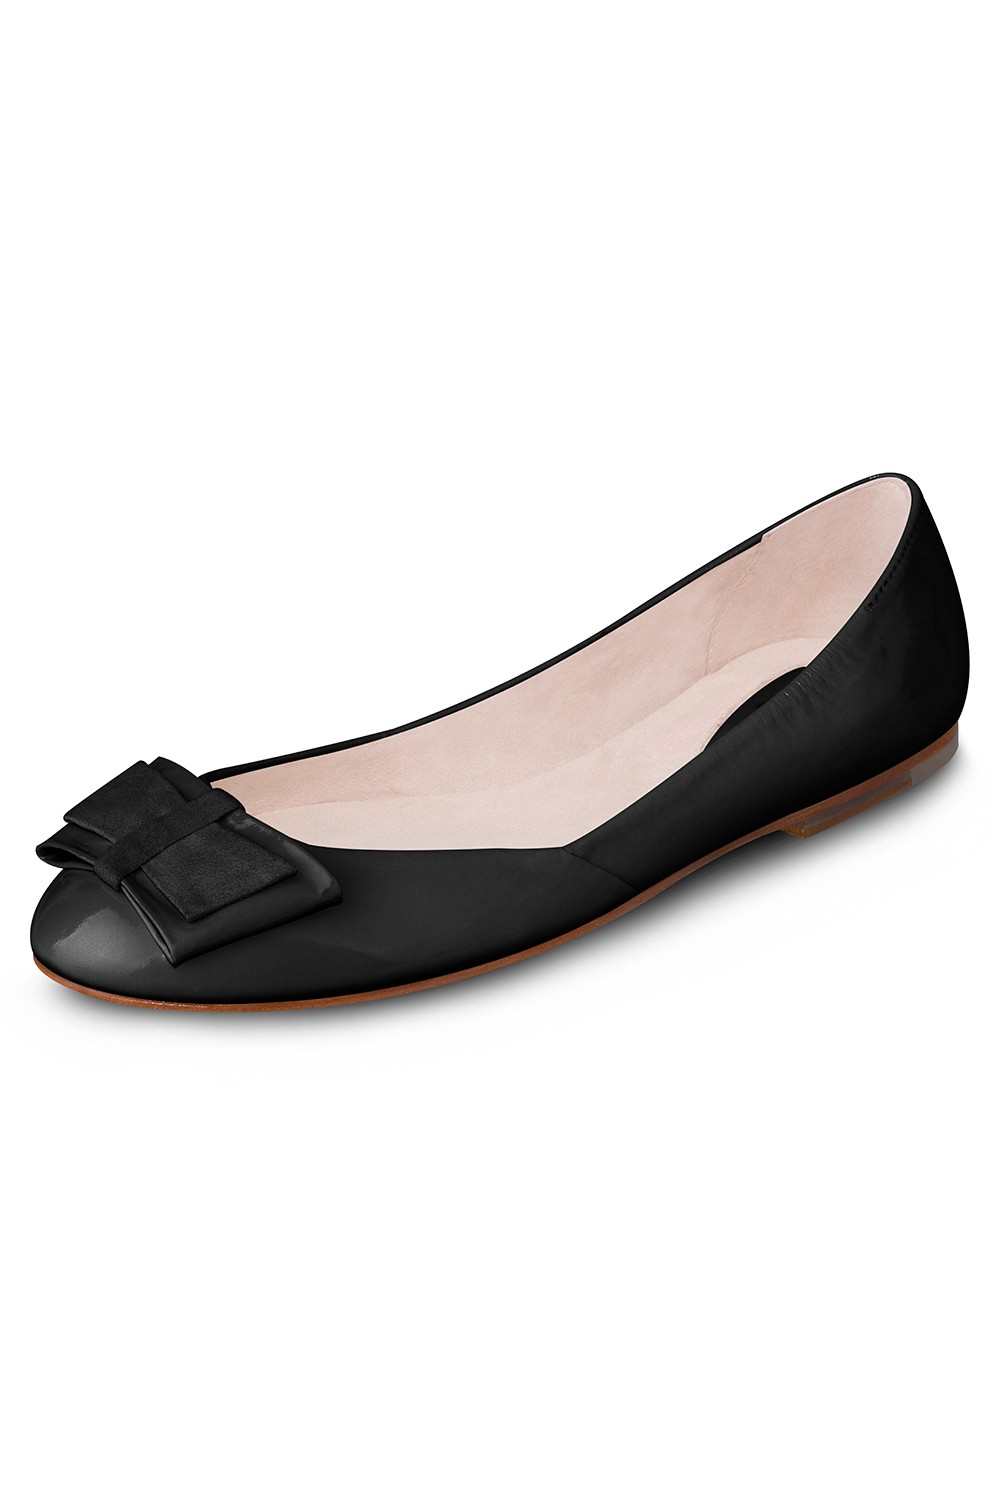 Morea Womens Fashion Shoes